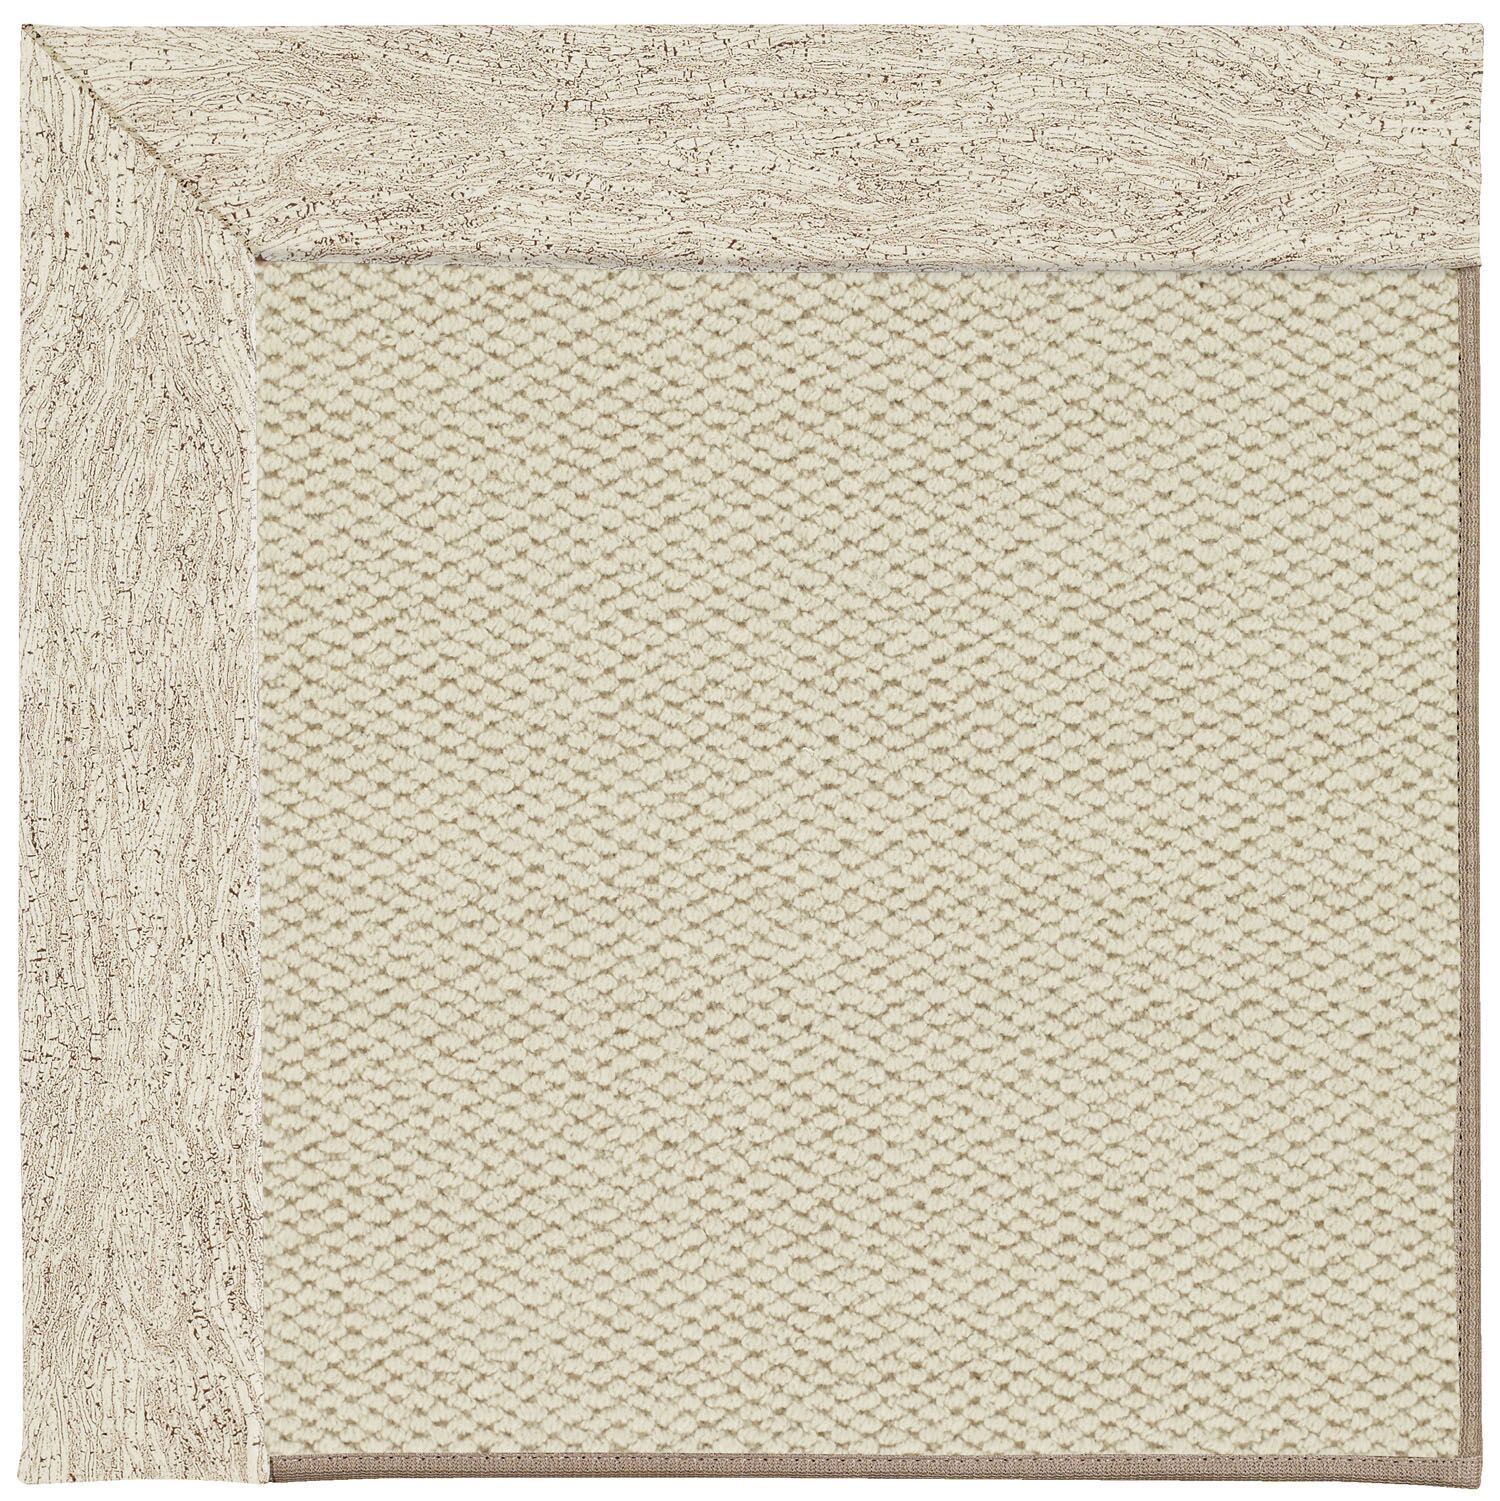 Barrett Linen Machine Tufted Natural Area Rug Rug Size: Round 12' x 12'